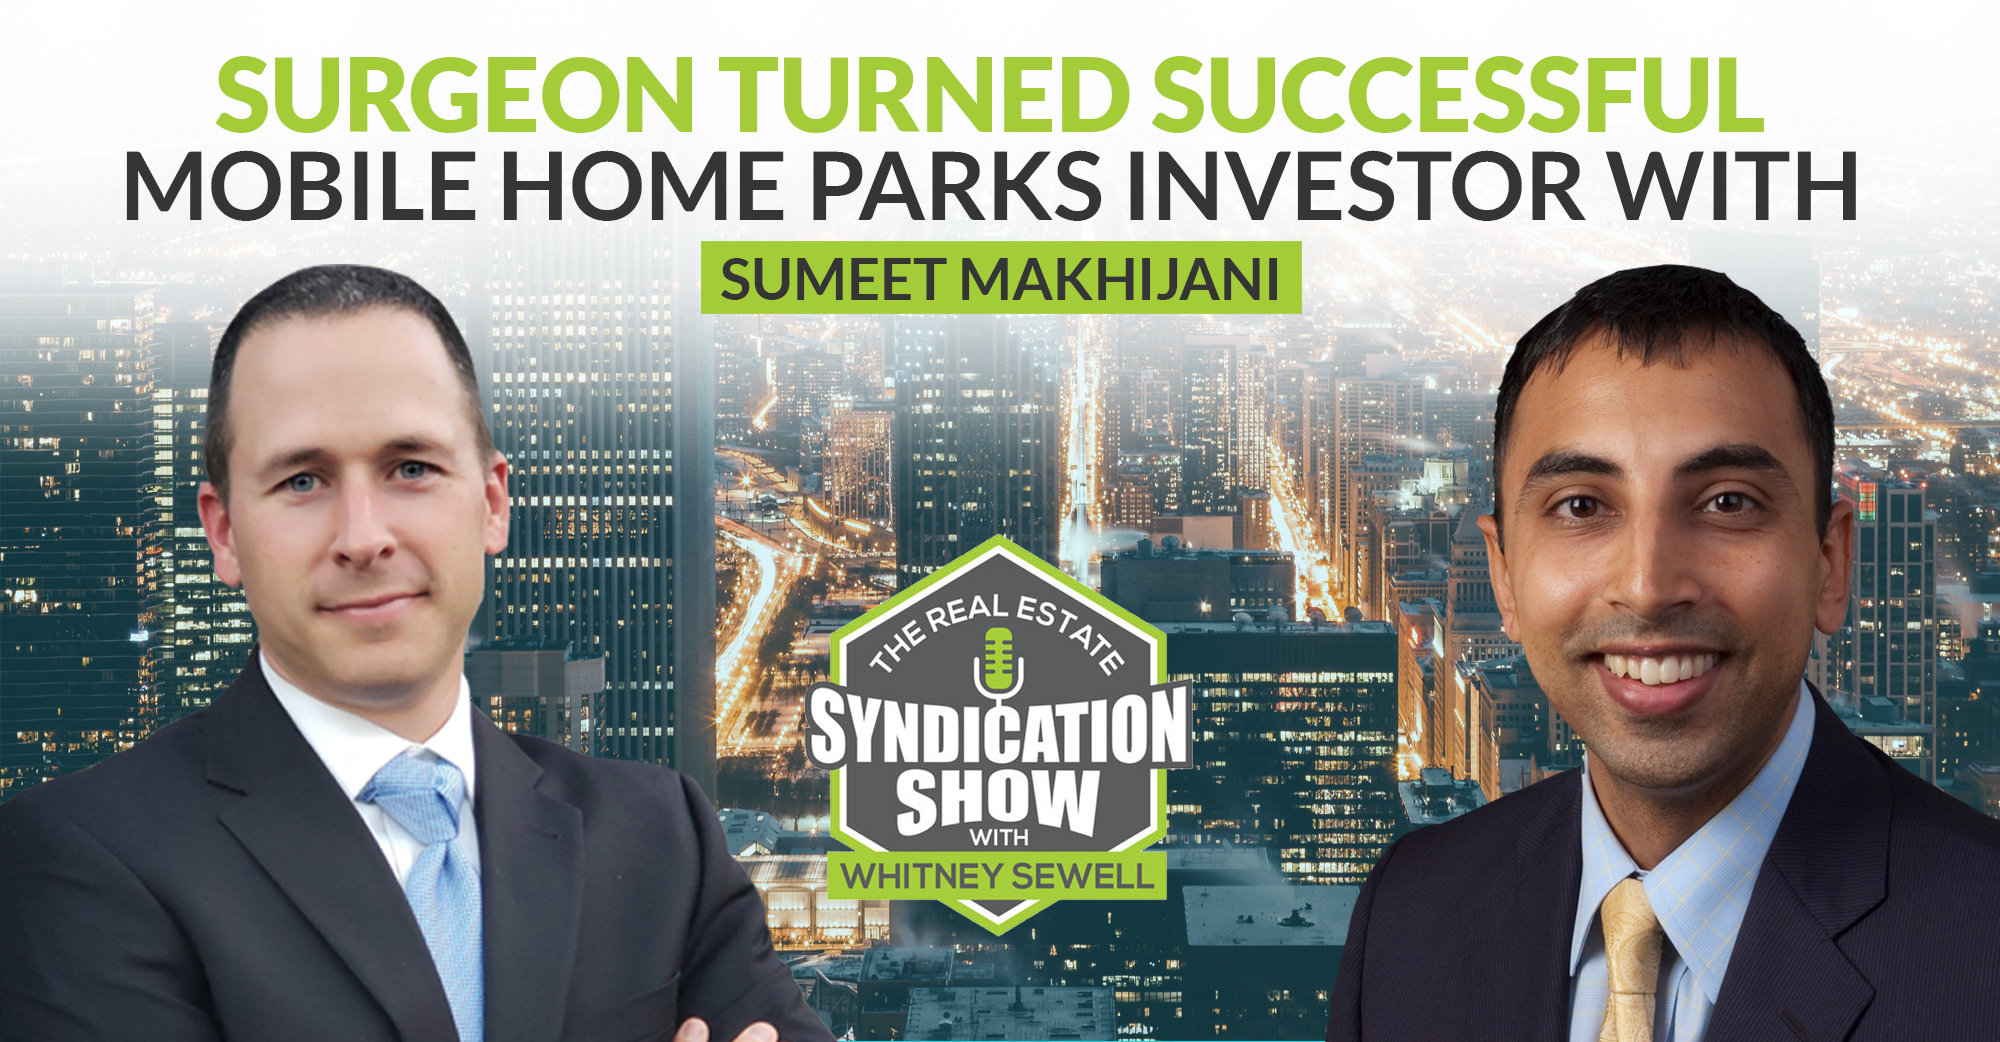 Surgeon Turned Successful Mobile Home Parks Investor